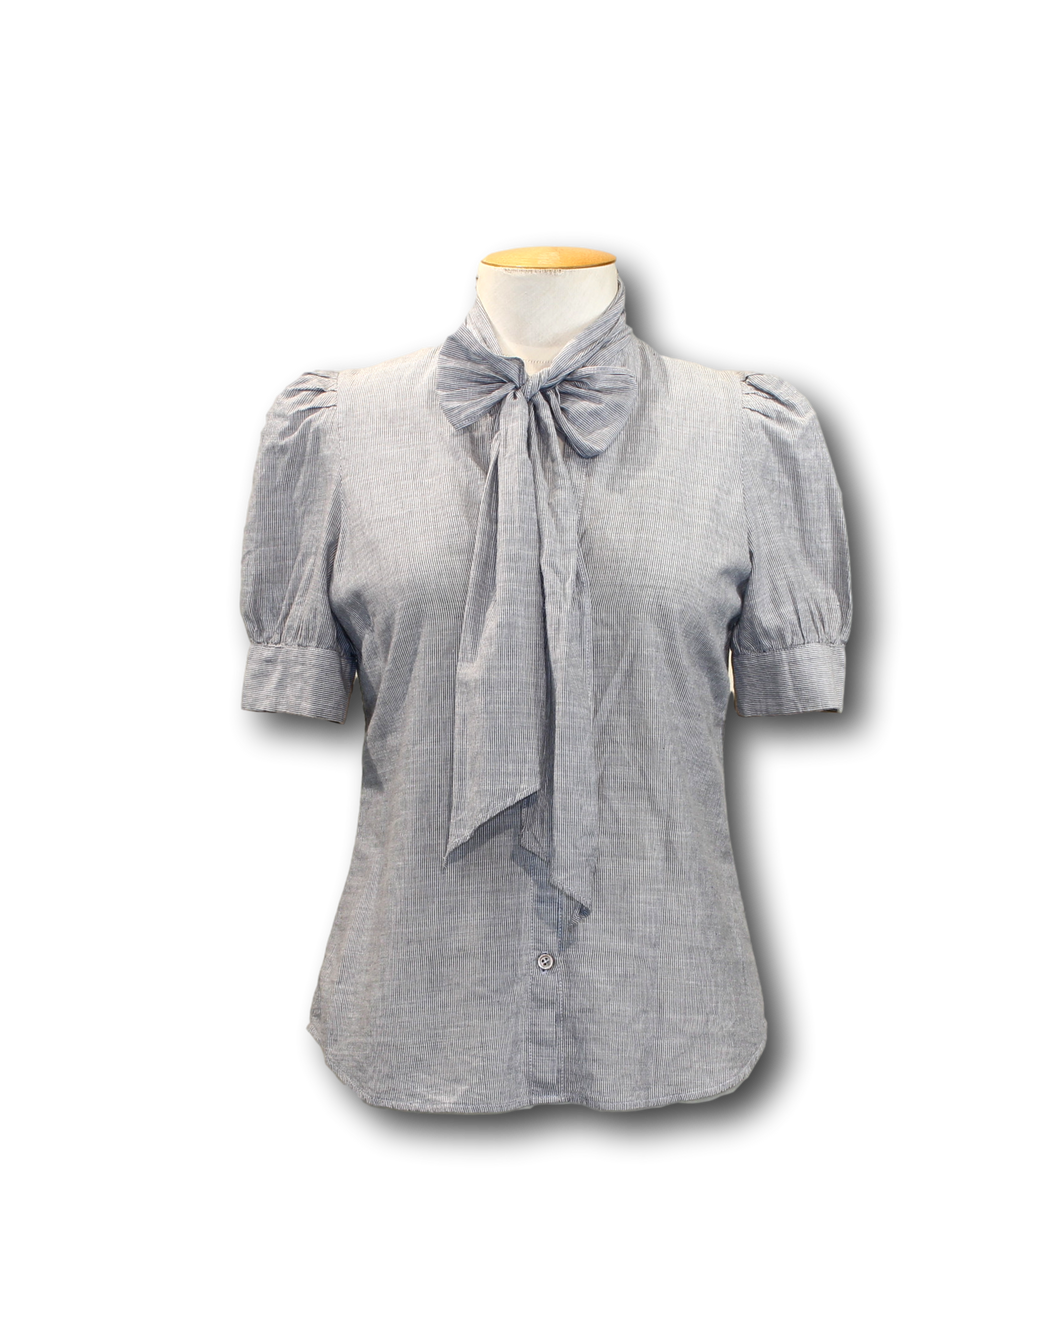 Helen Cherry Bow Shirt - Size S